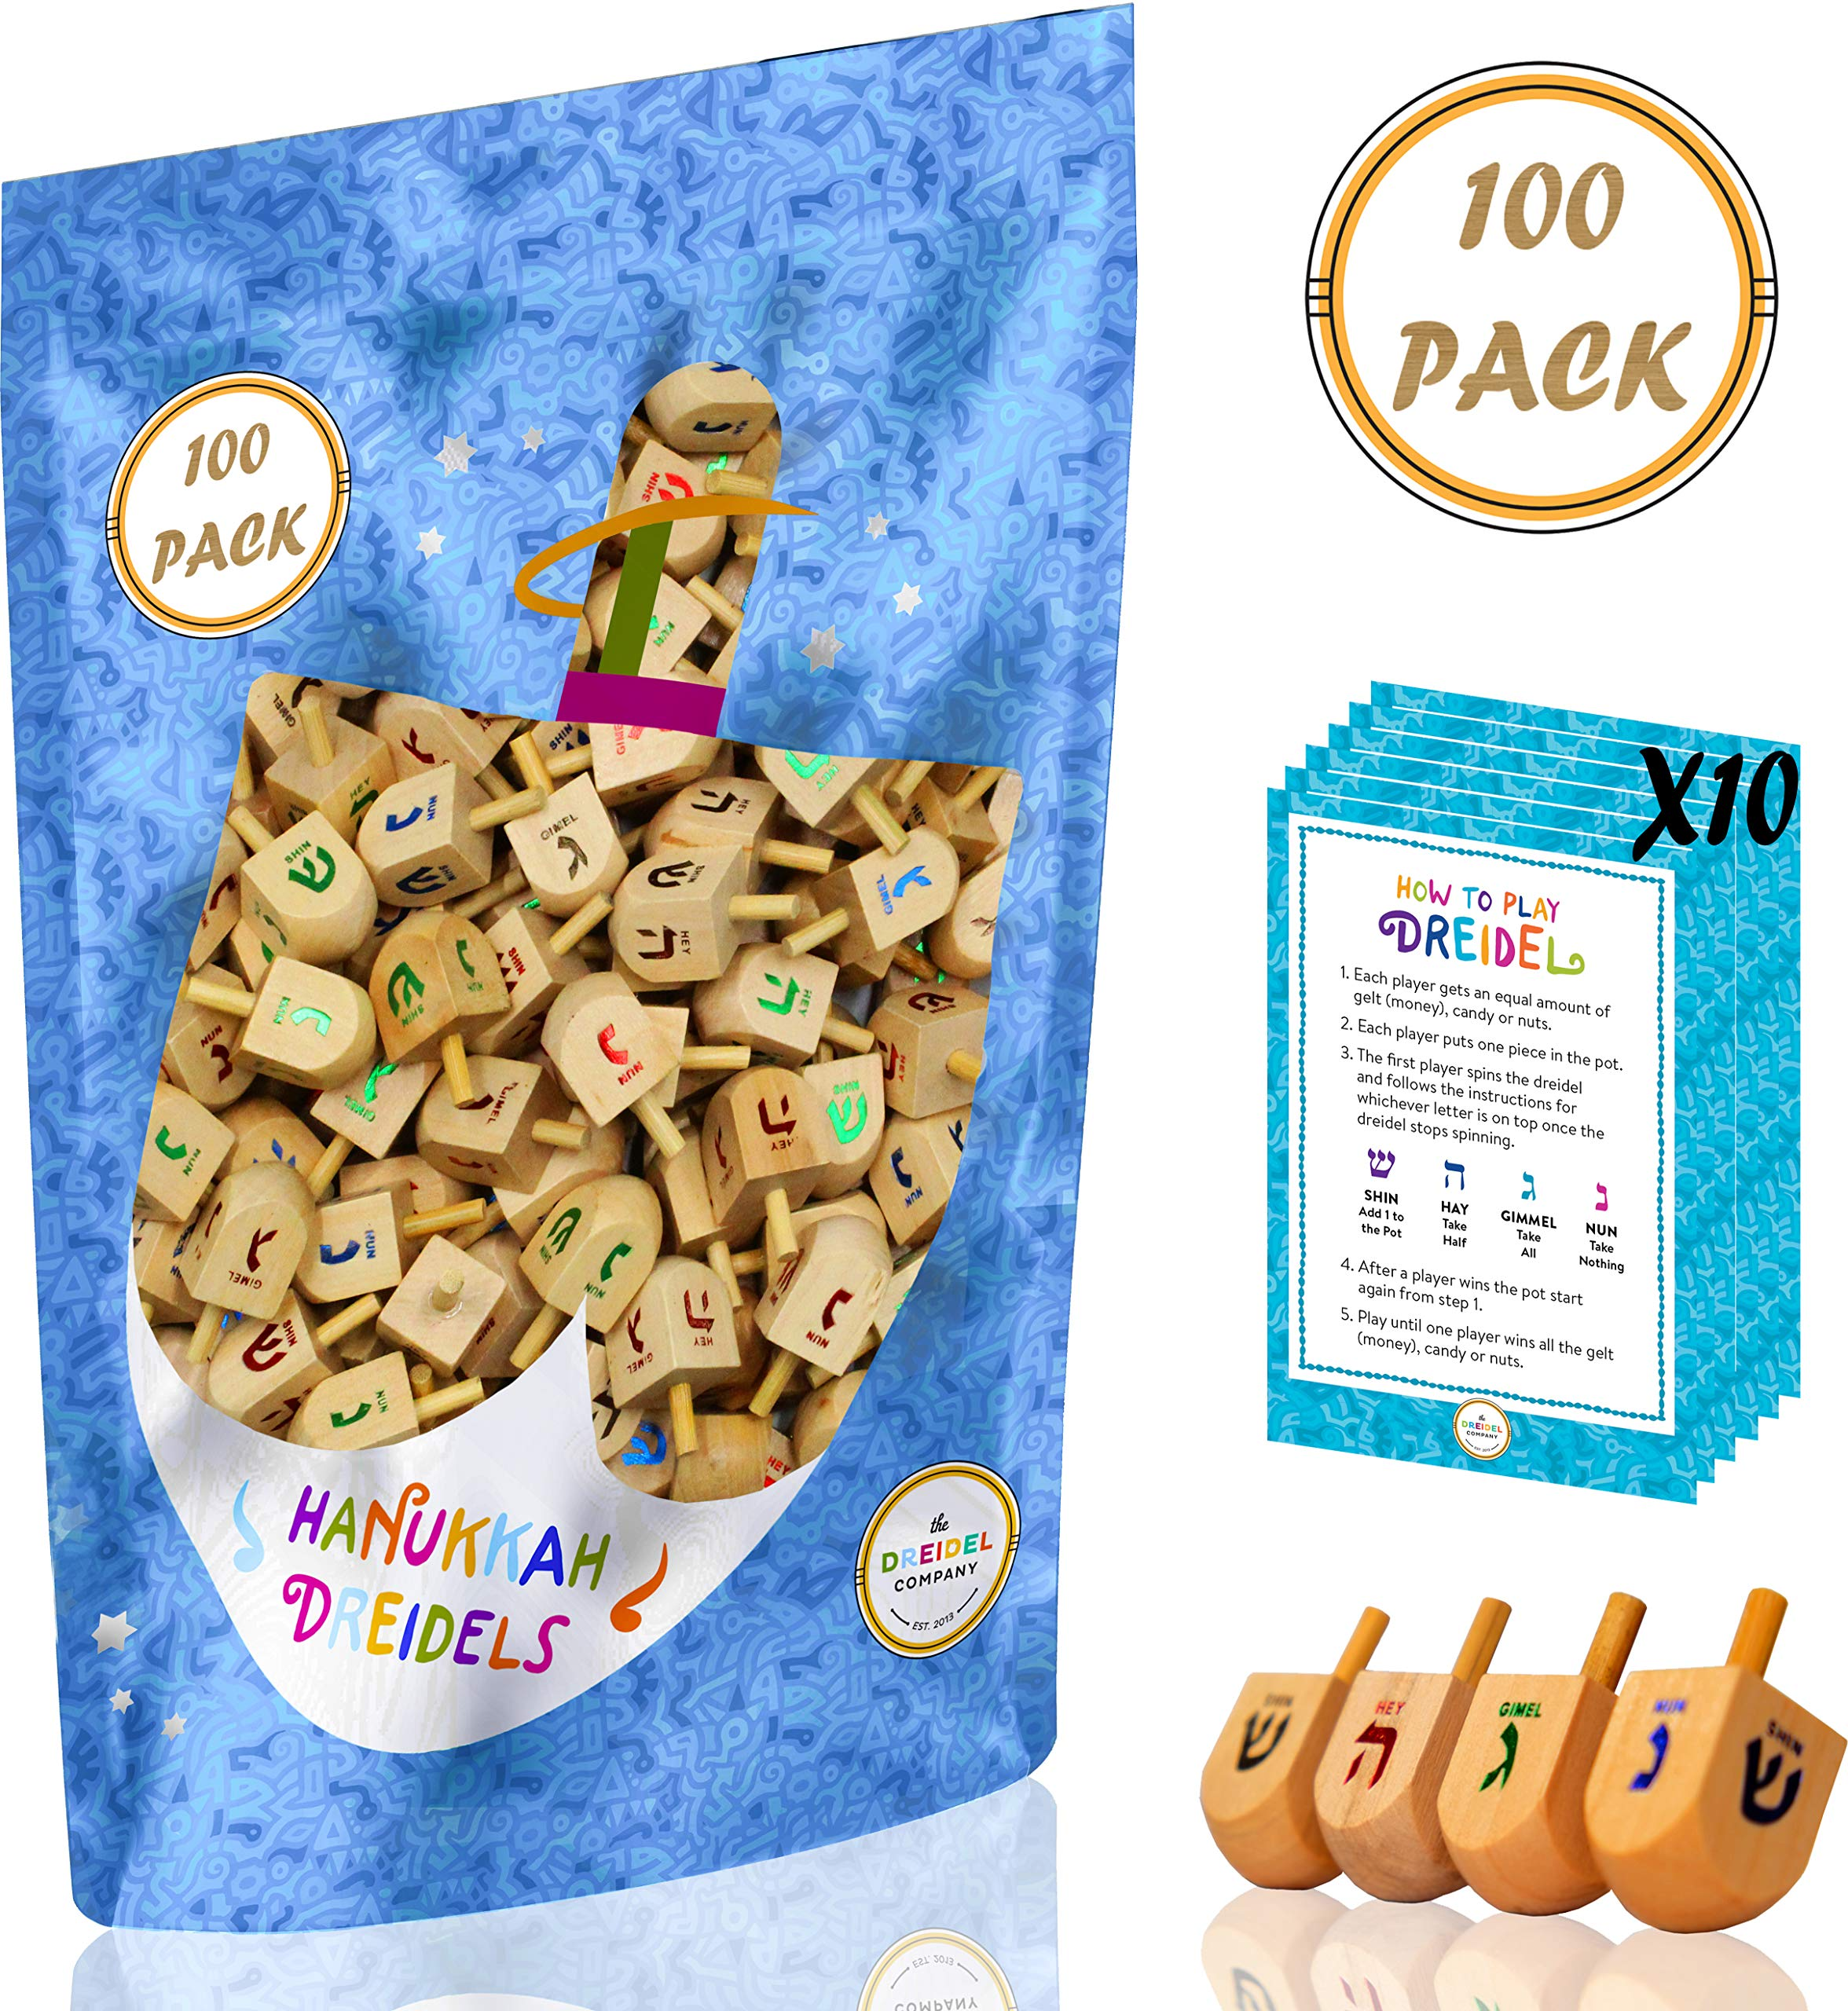 Wood Dreidels 100 Bulk Medium Sized Hanukkah Draydel with English Transliteration - Includes 10 Game Instruction Cards! (100-Pack)